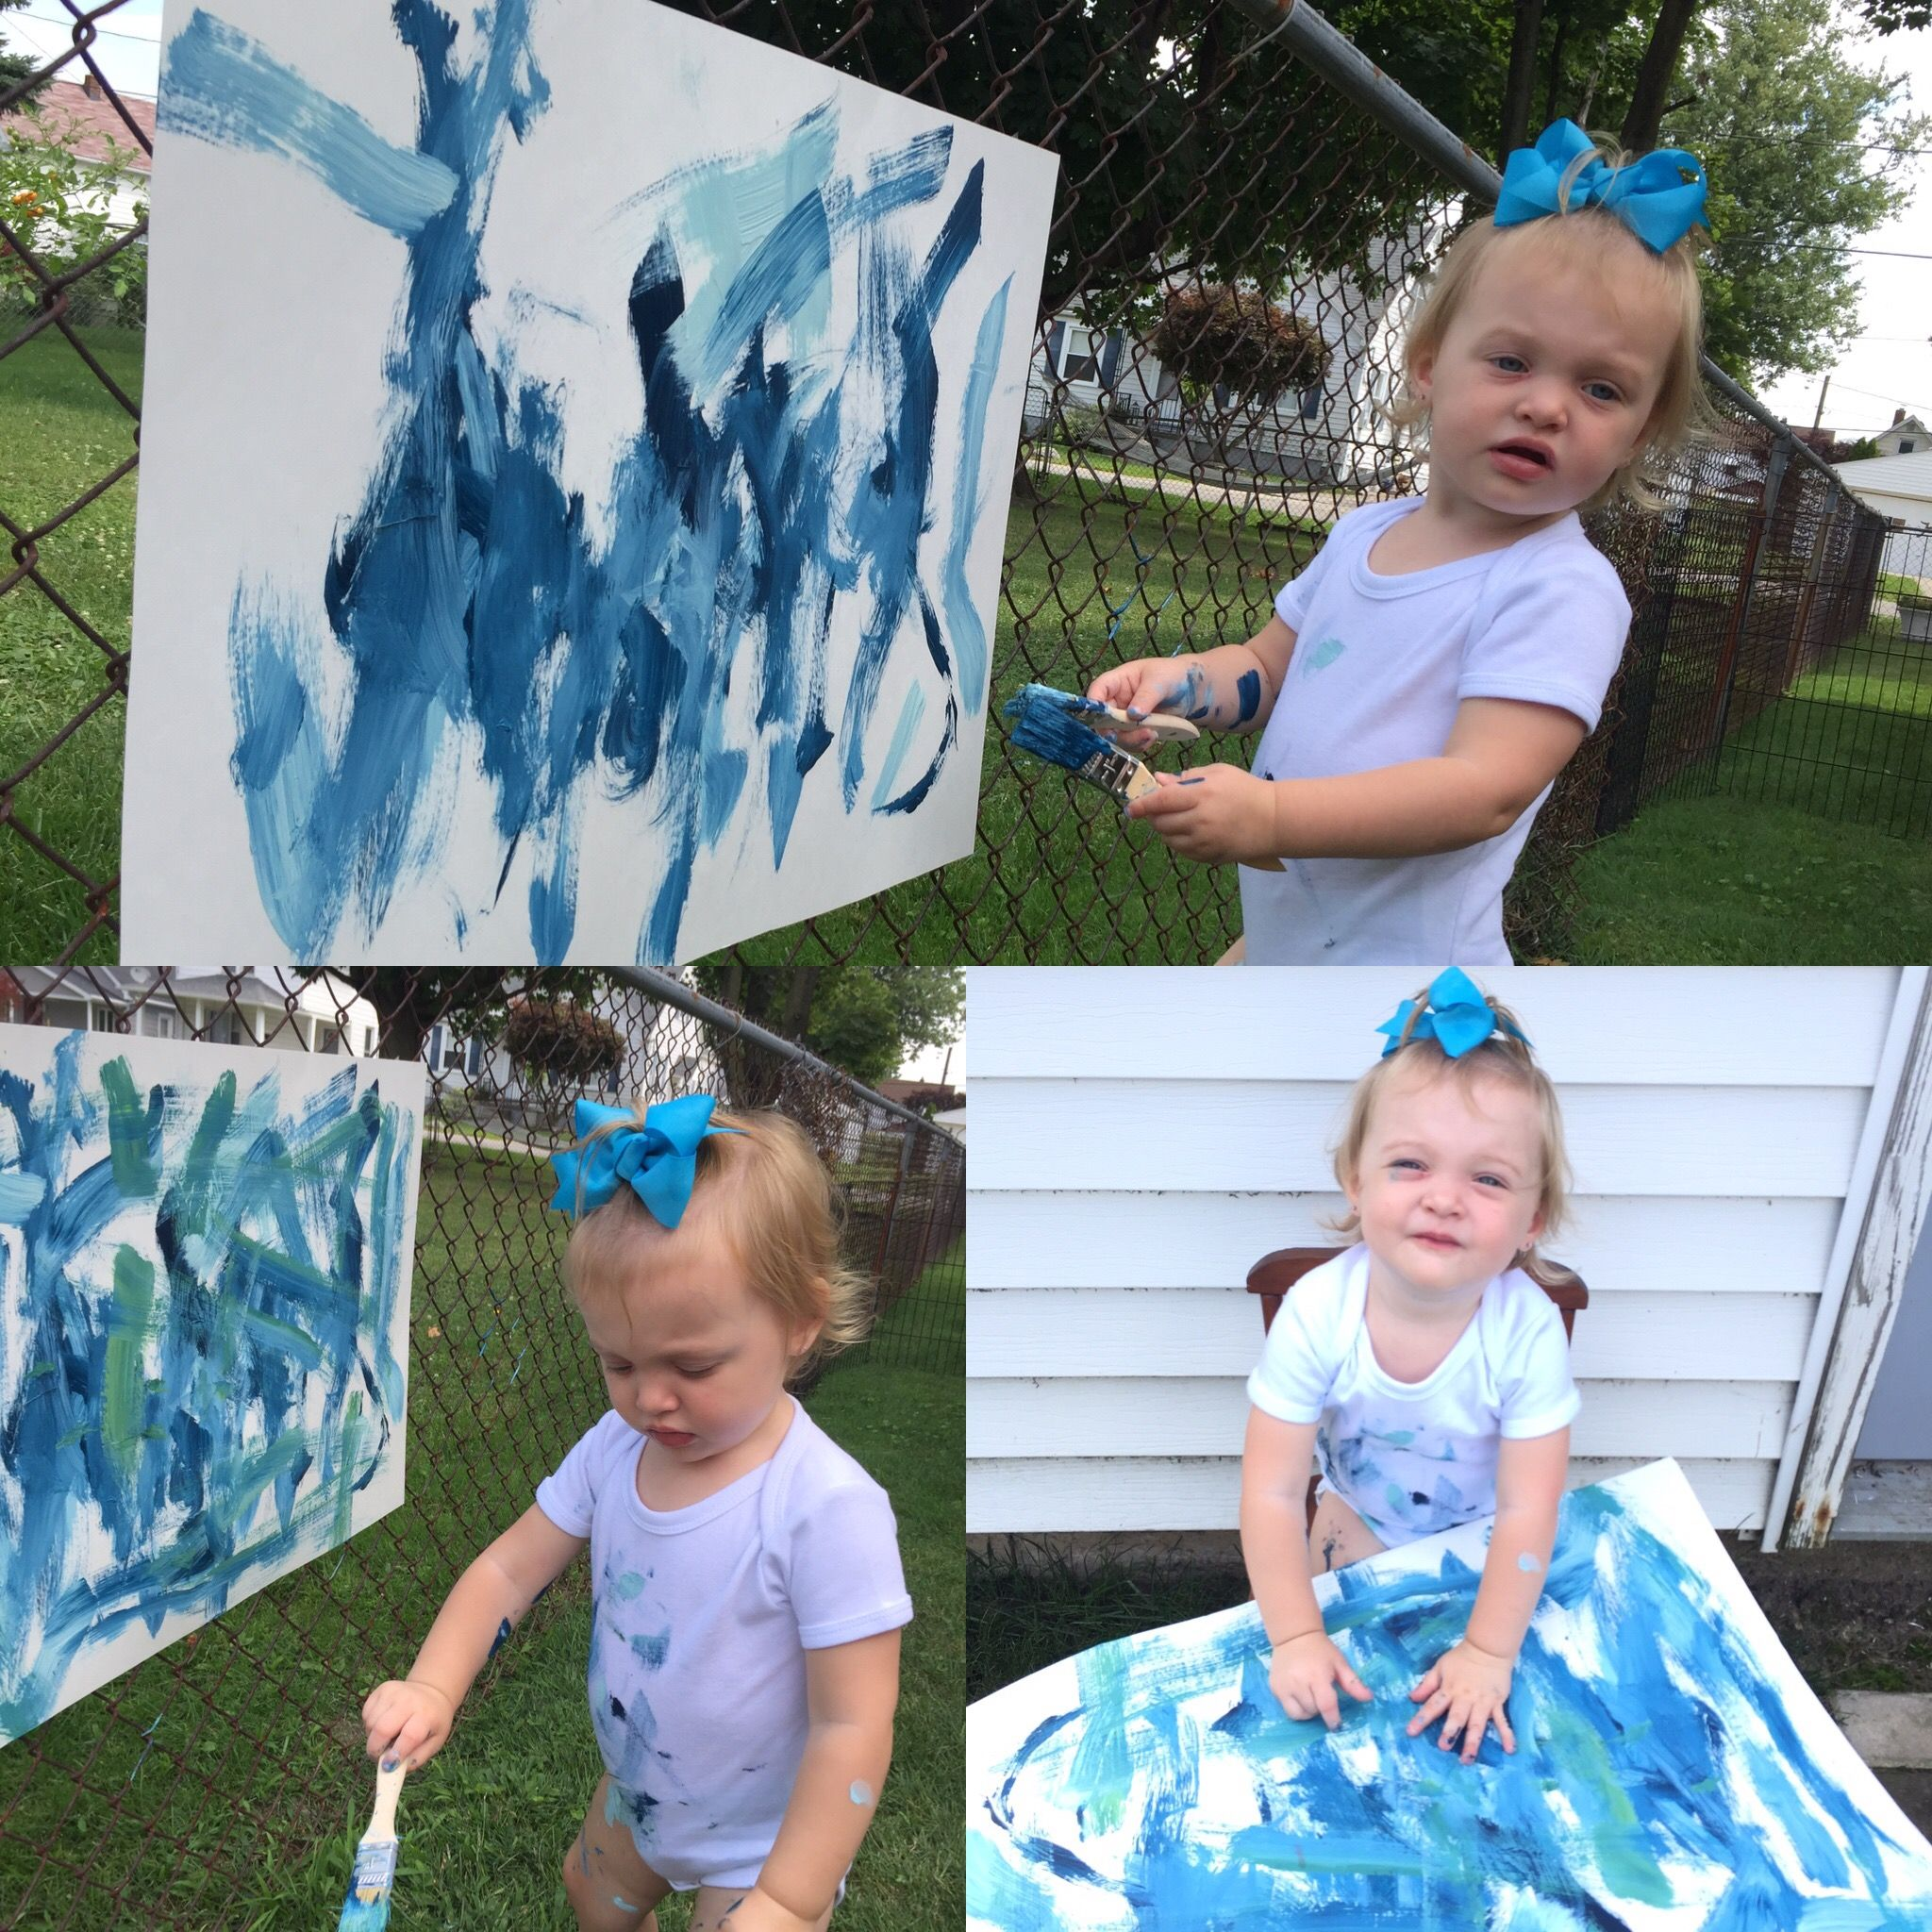 Sibling Gender Reveal Have The Older Sibling Paint A Picture For The New Baby To Put In Their Nurser Boy Gender Reveal Gender Reveal Photos Baby Gender Reveal